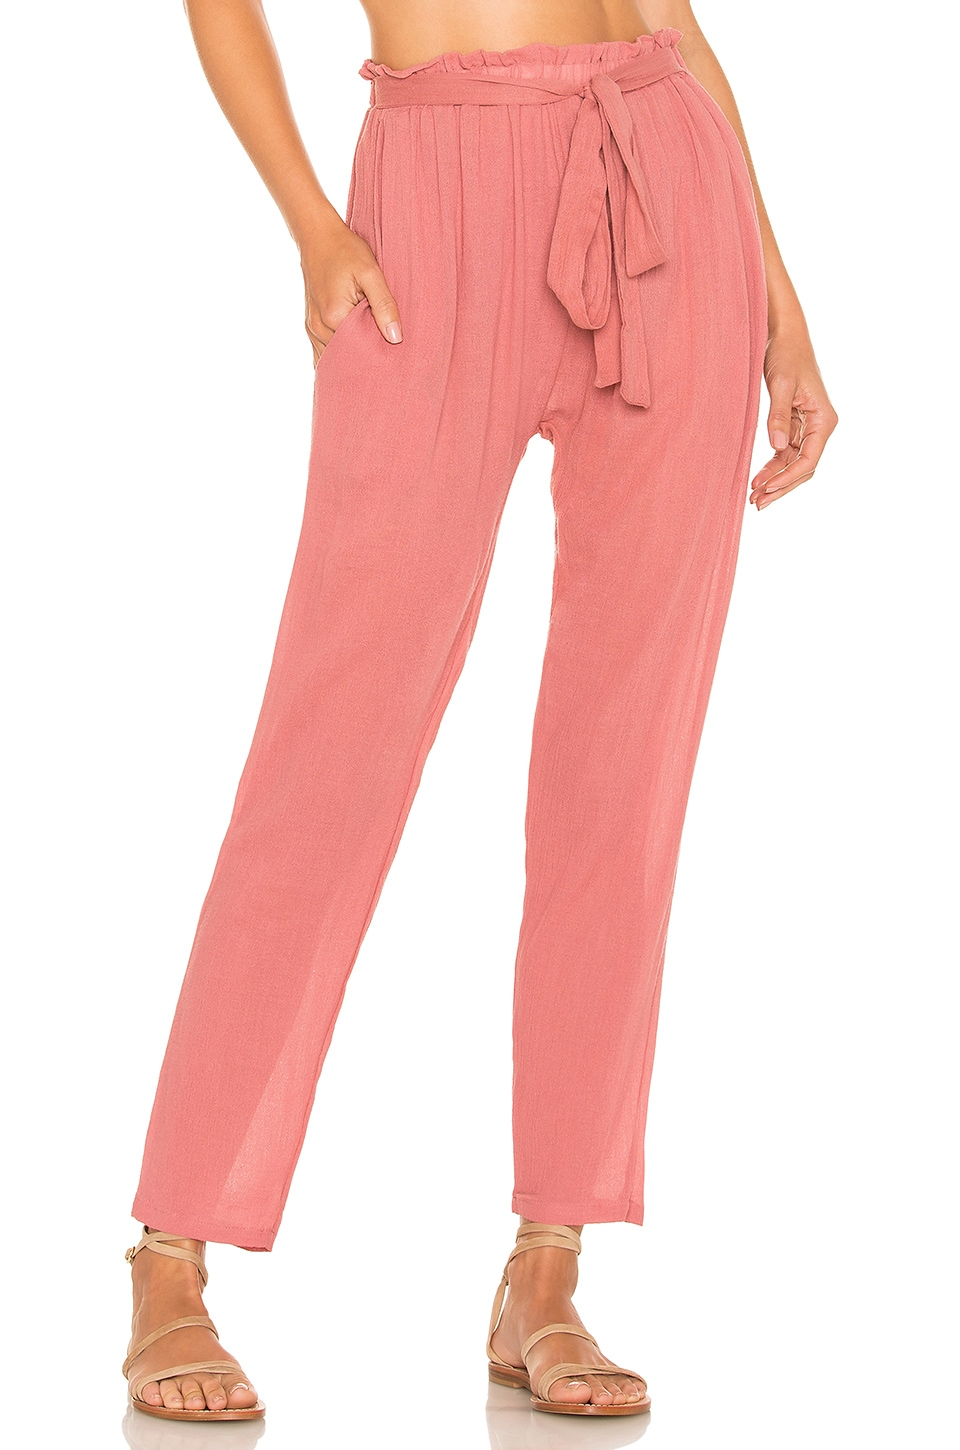 eberjey Summer Of Love Hudson Pant in Sunset Rose